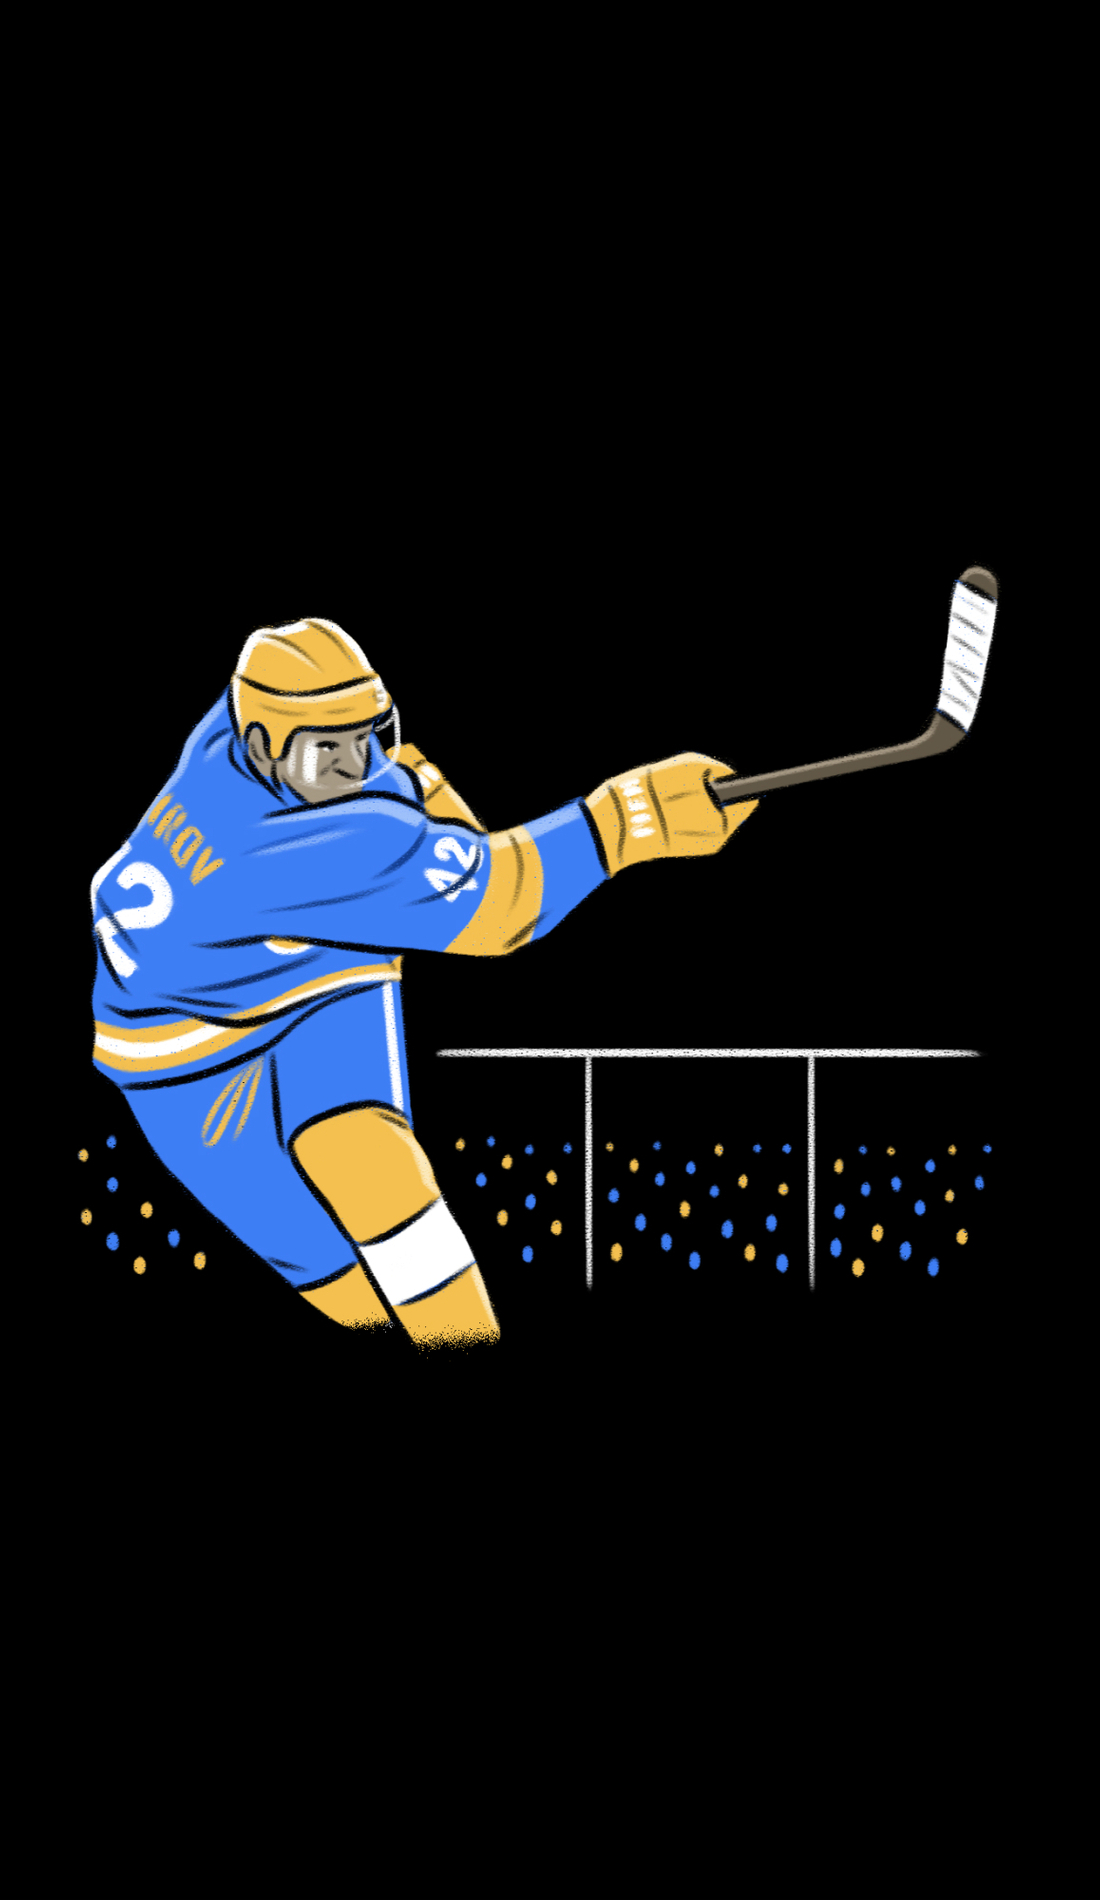 A Alabama Huntsville Chargers Hockey live event